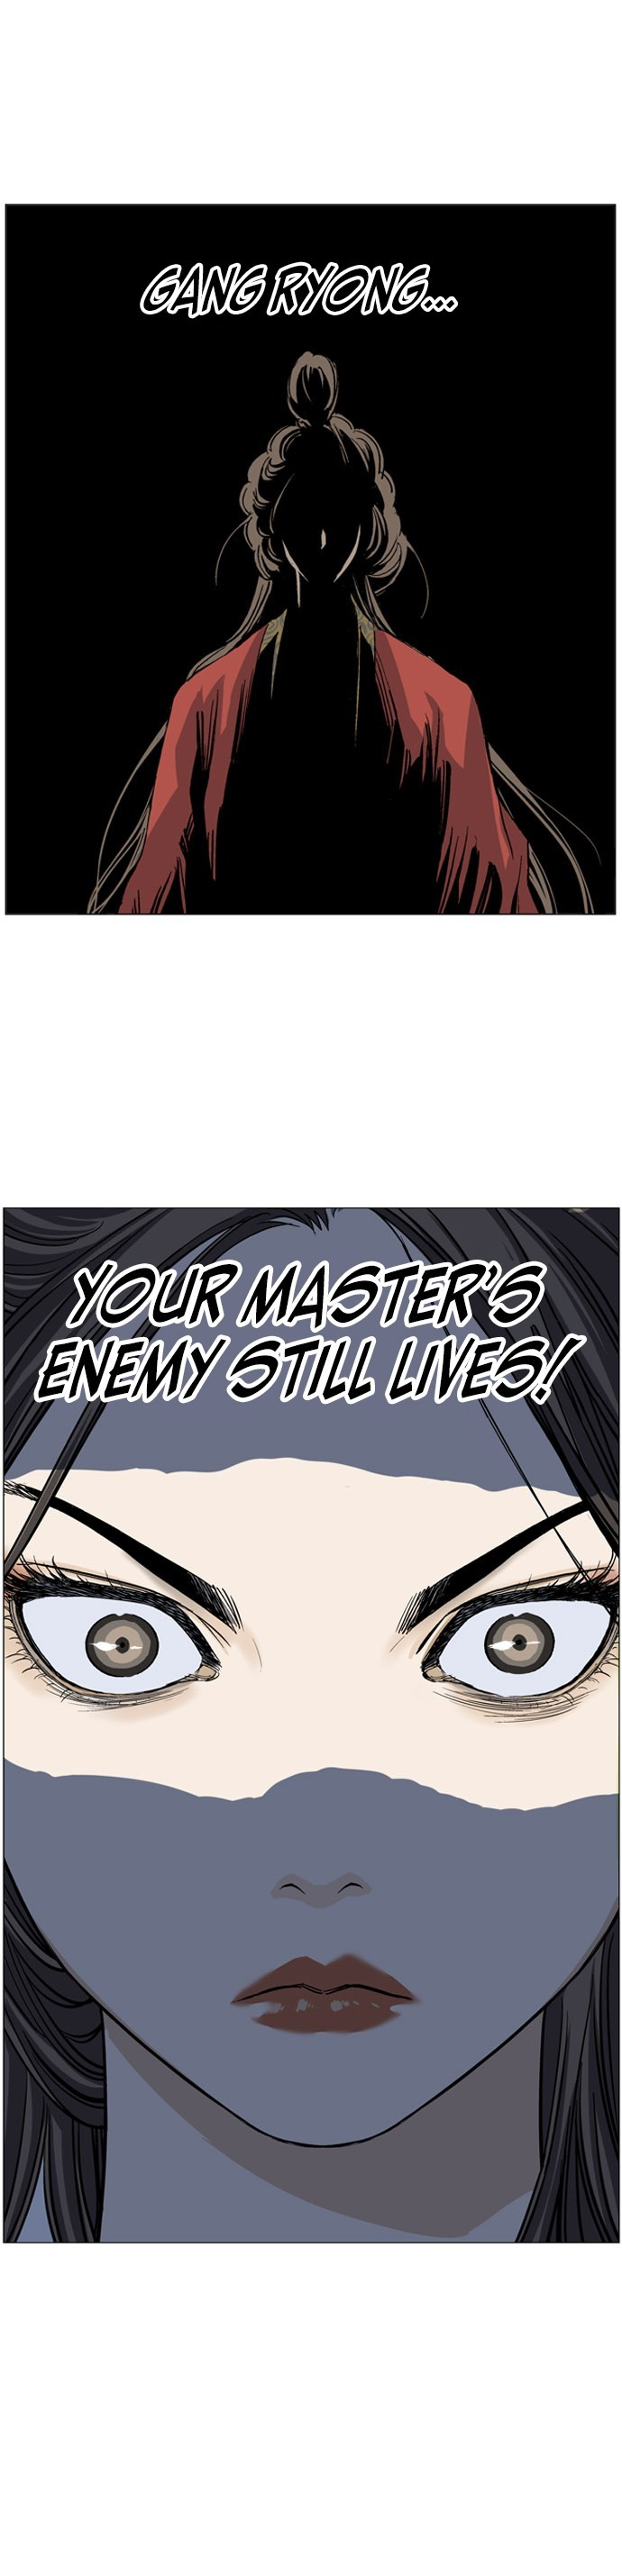 Gosu (The Master) - Chapter 34